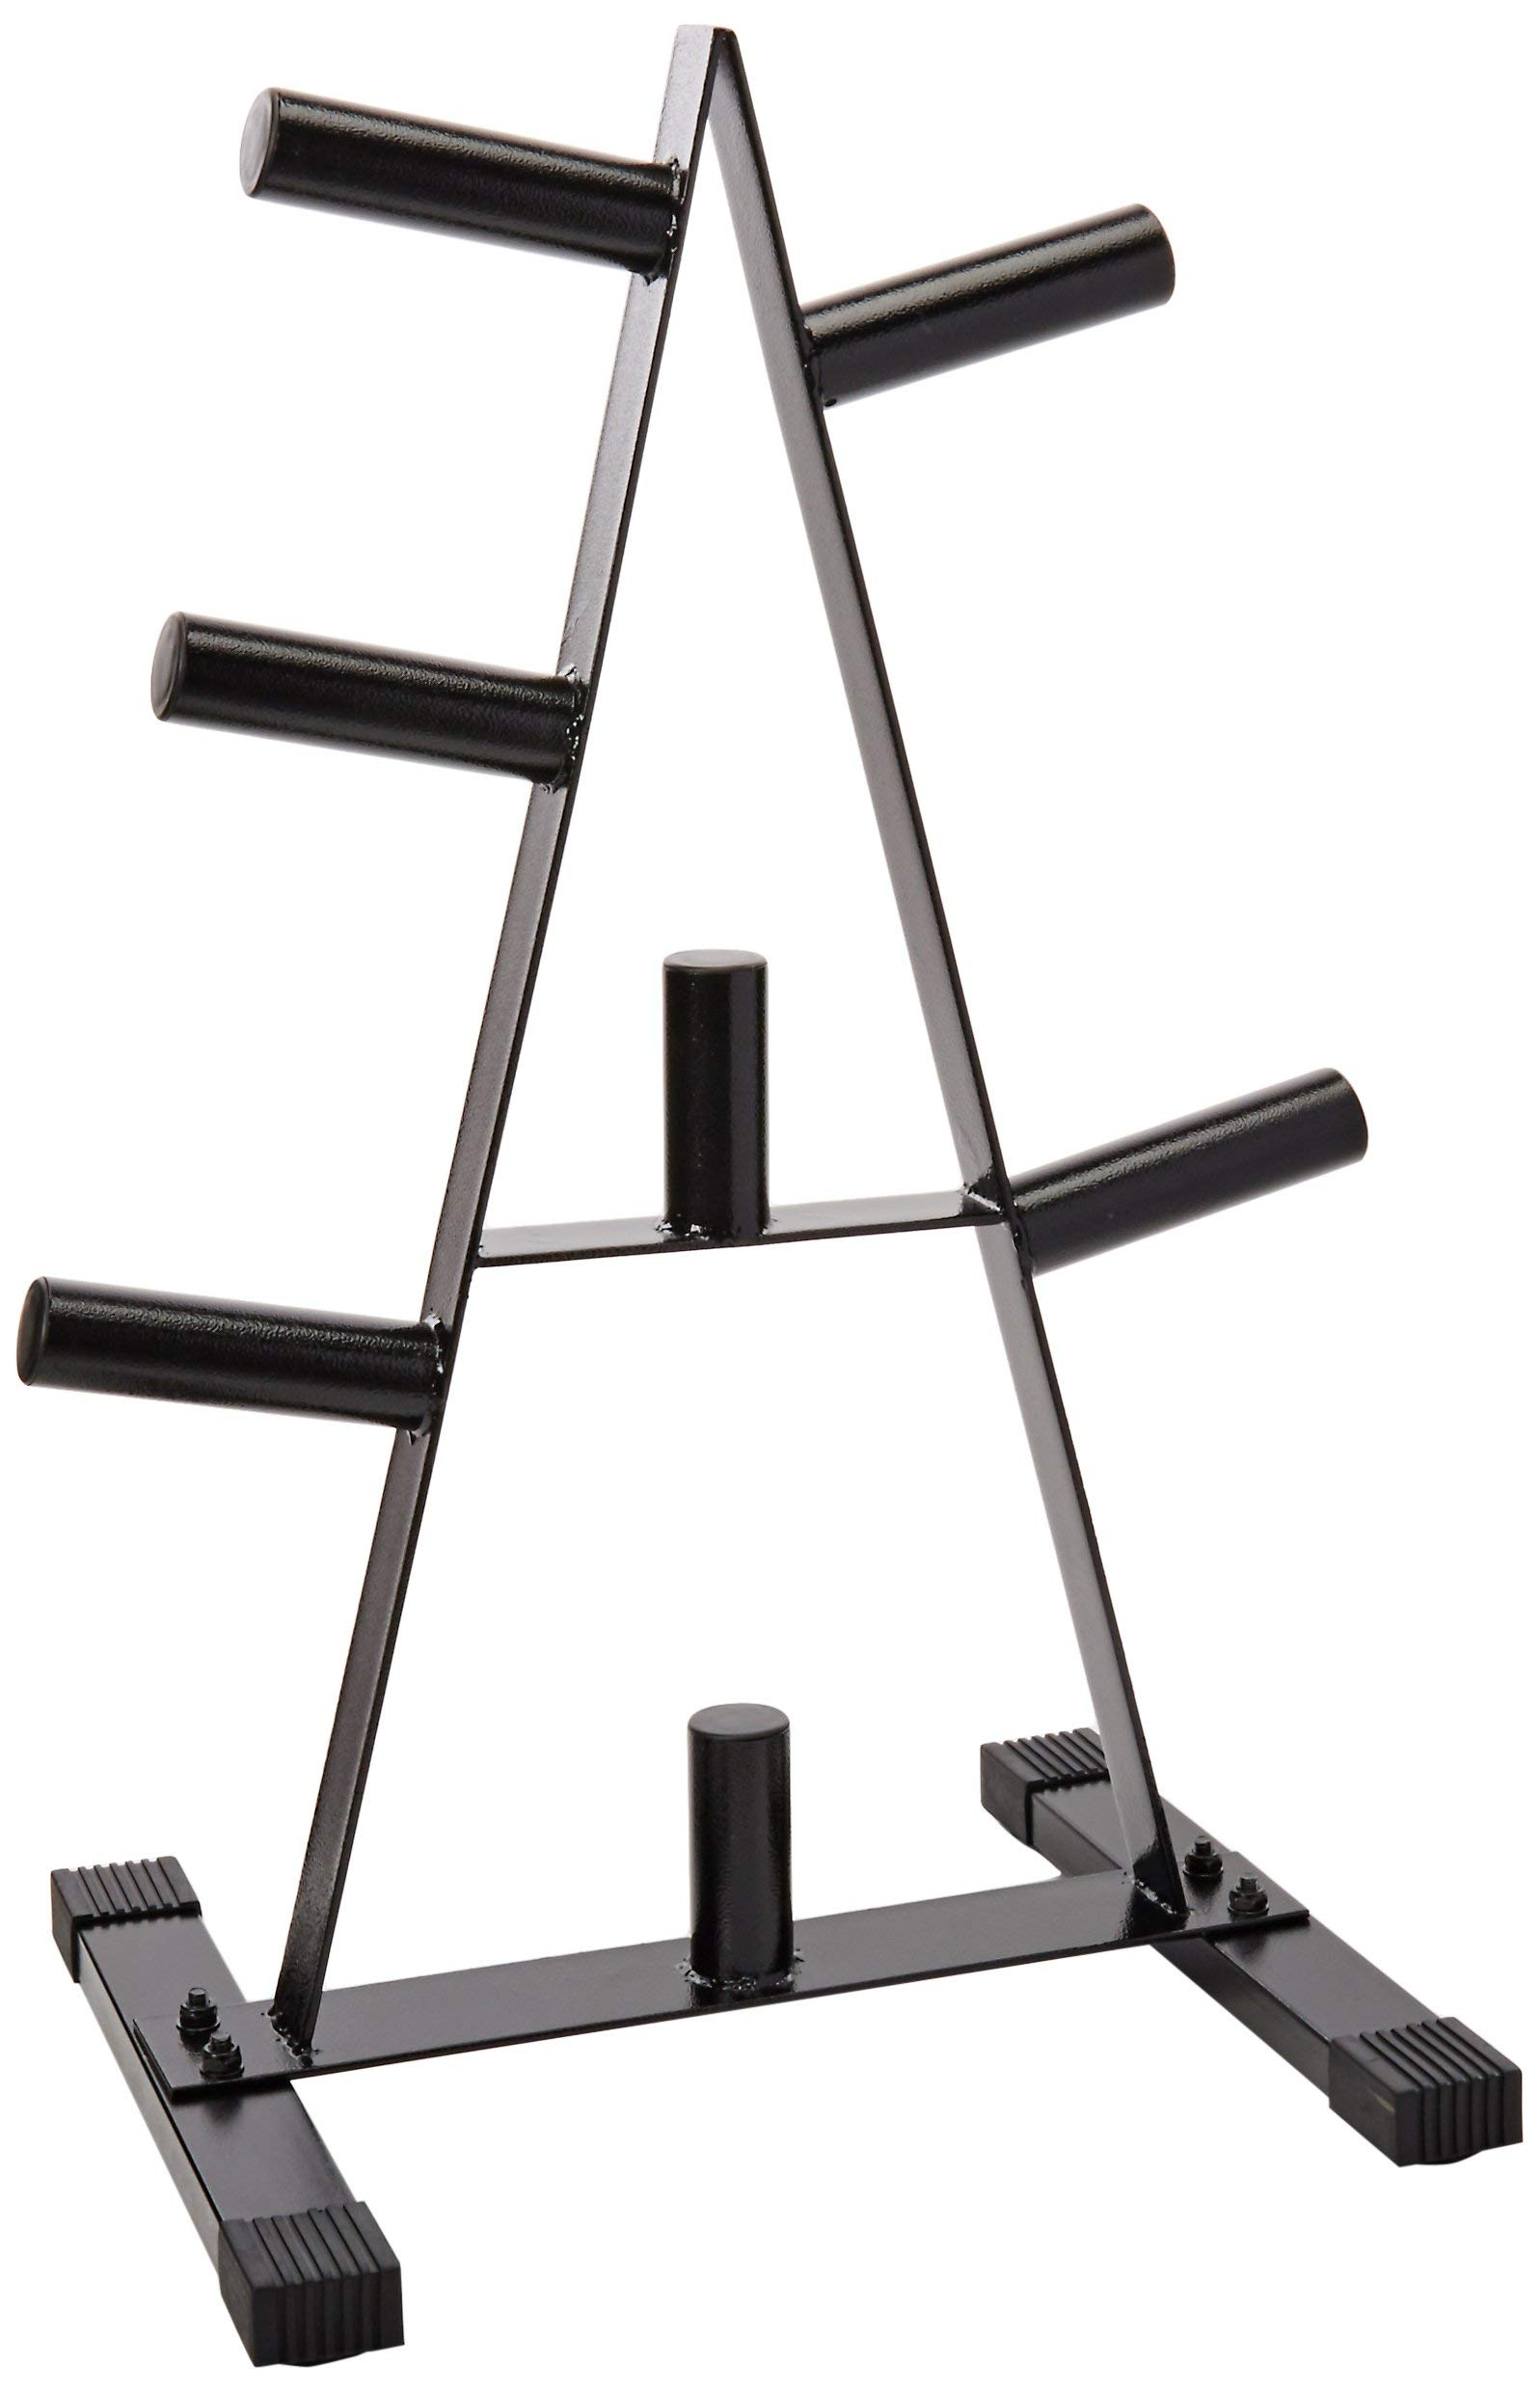 CAP Barbell Olympic 2-Inch Plate Rack (Certified Refurbished)